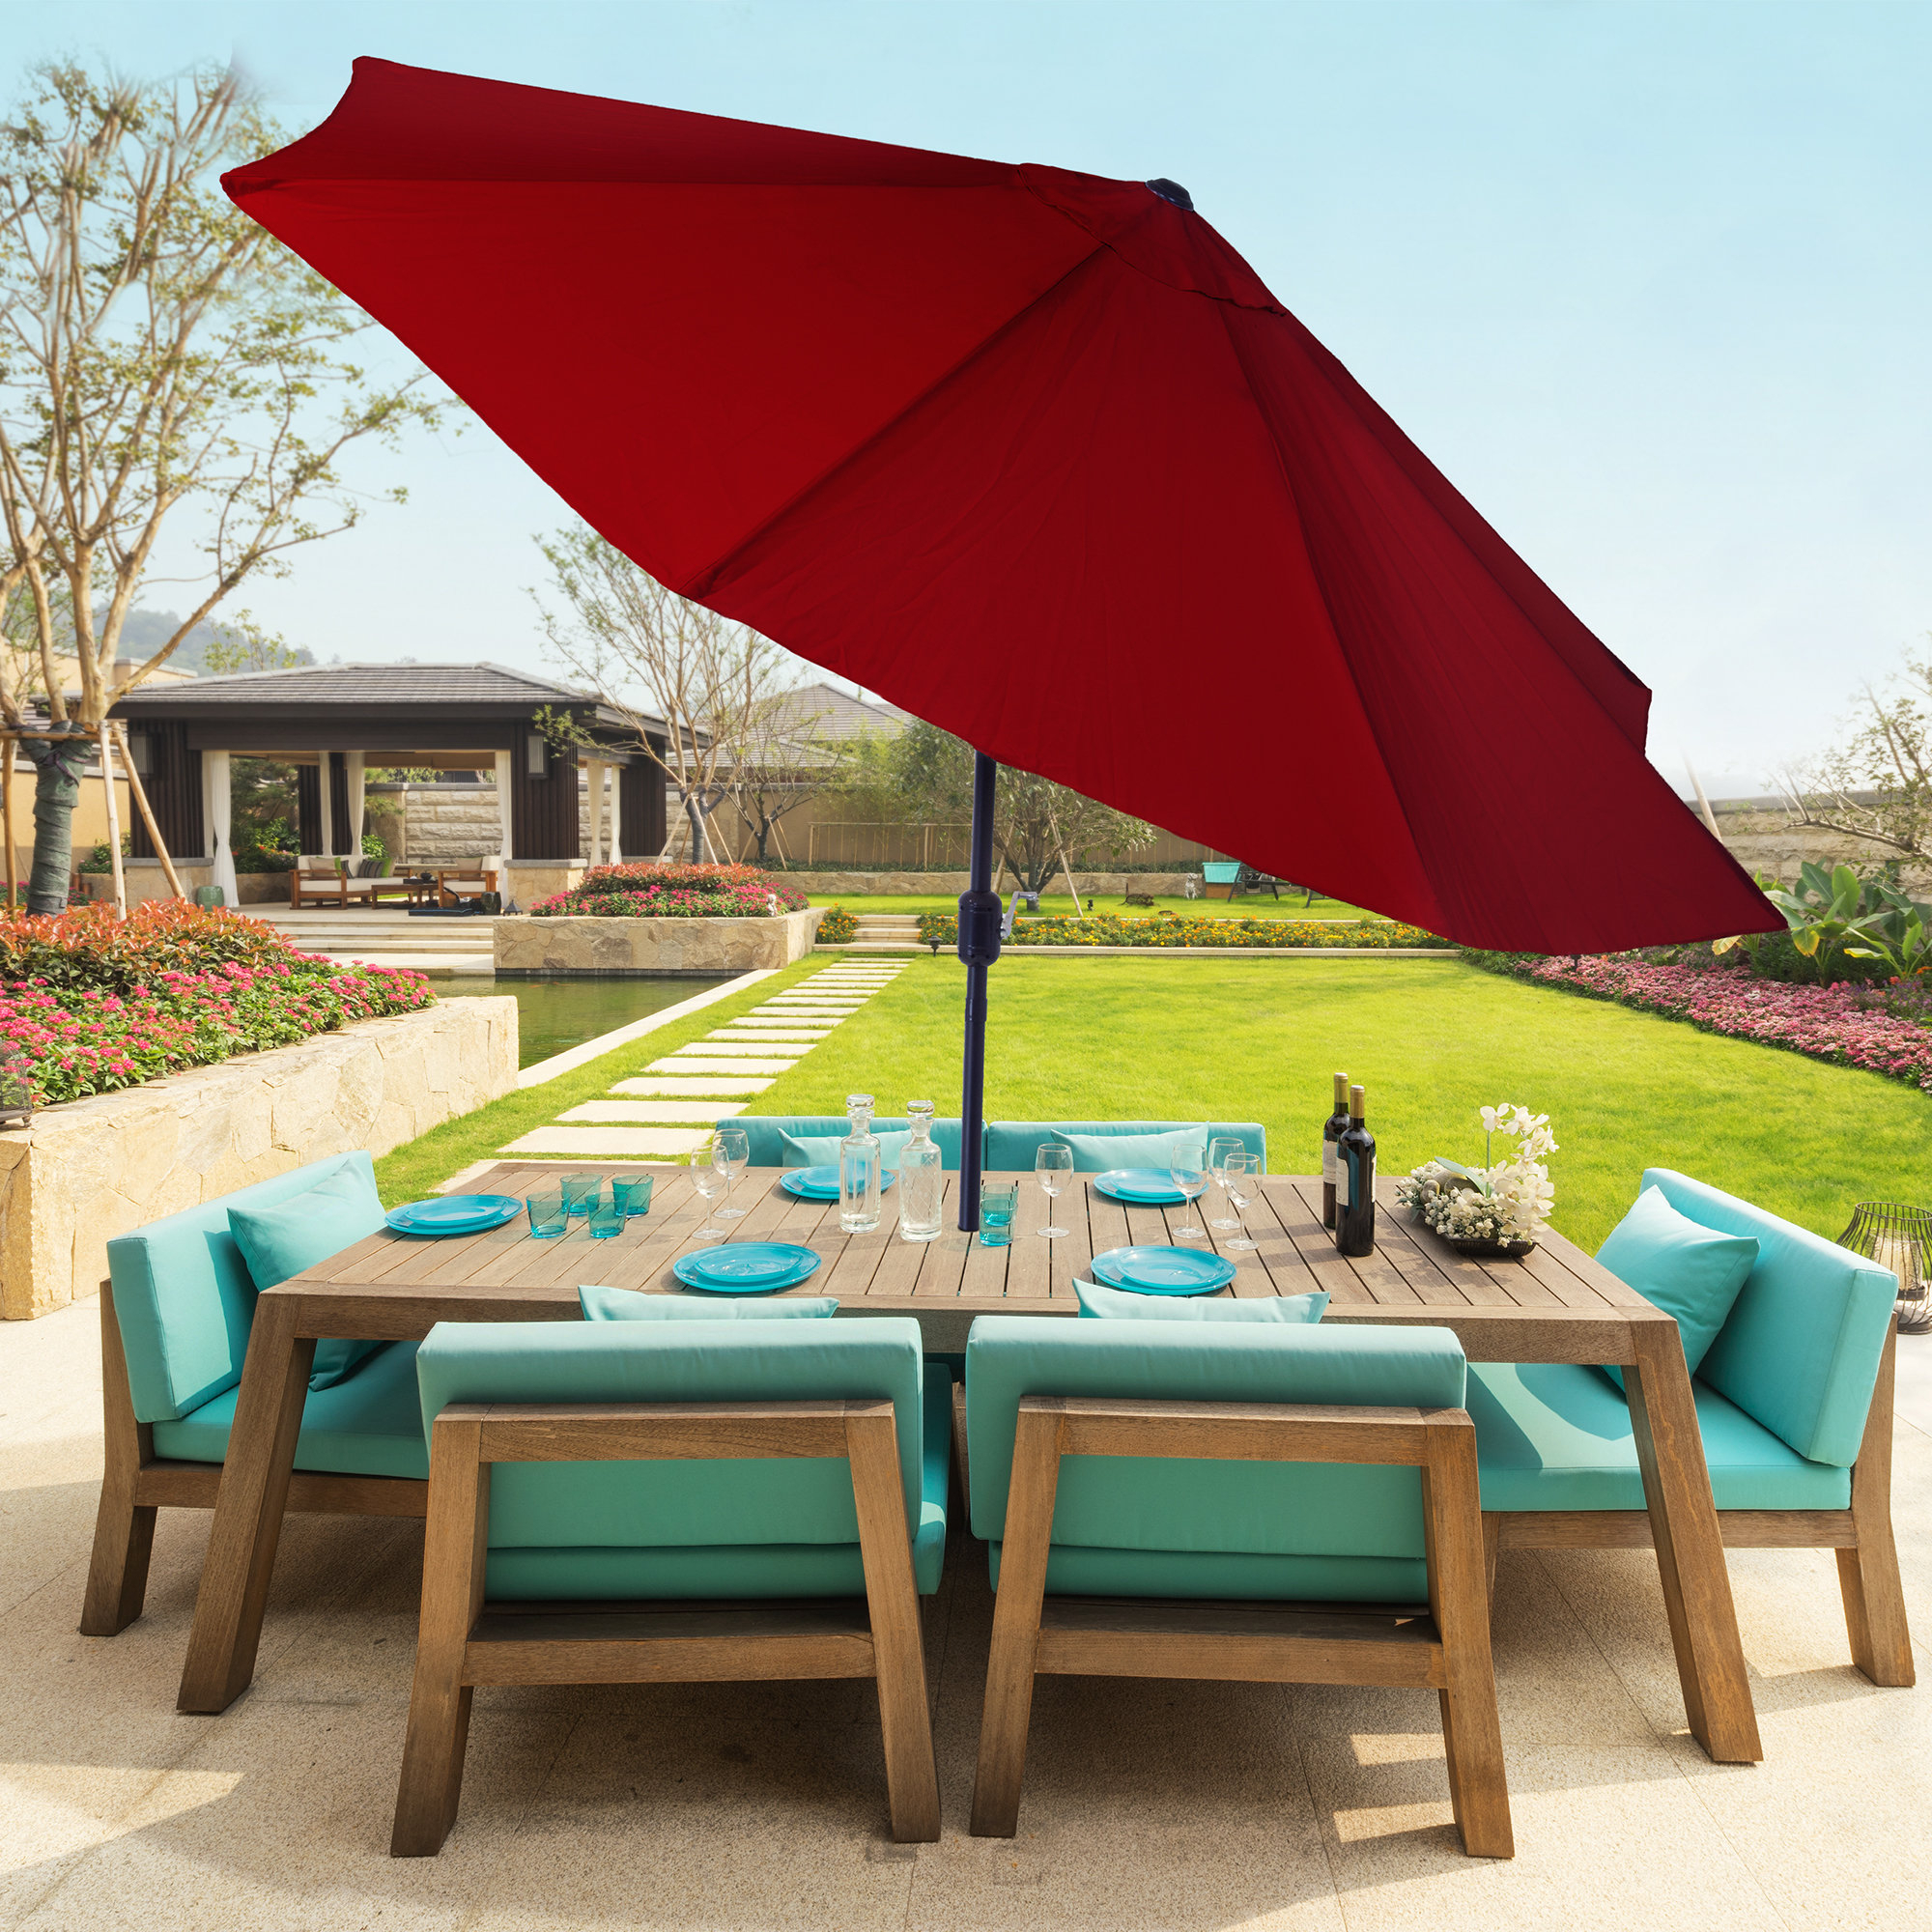 Kelton 10' Market Umbrella With Regard To 2019 Kelton Market Umbrellas (View 4 of 20)